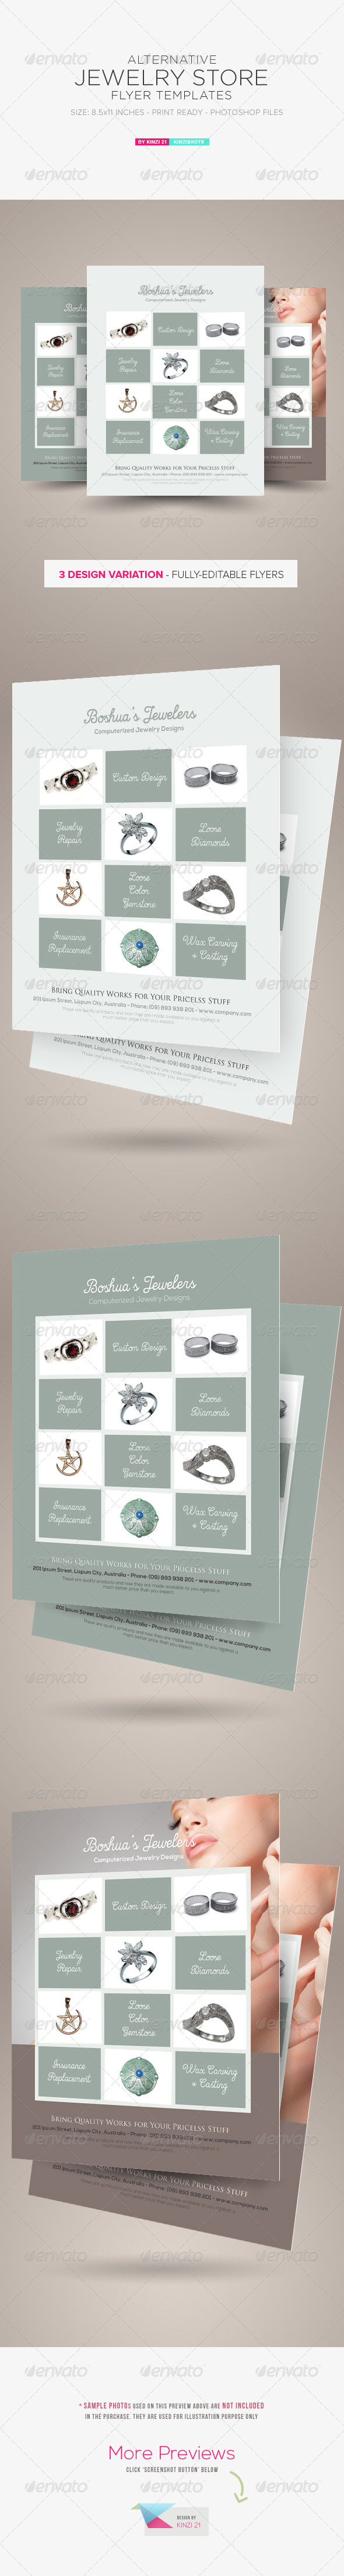 Jewelry Store Flyer Template - Corporate Flyers